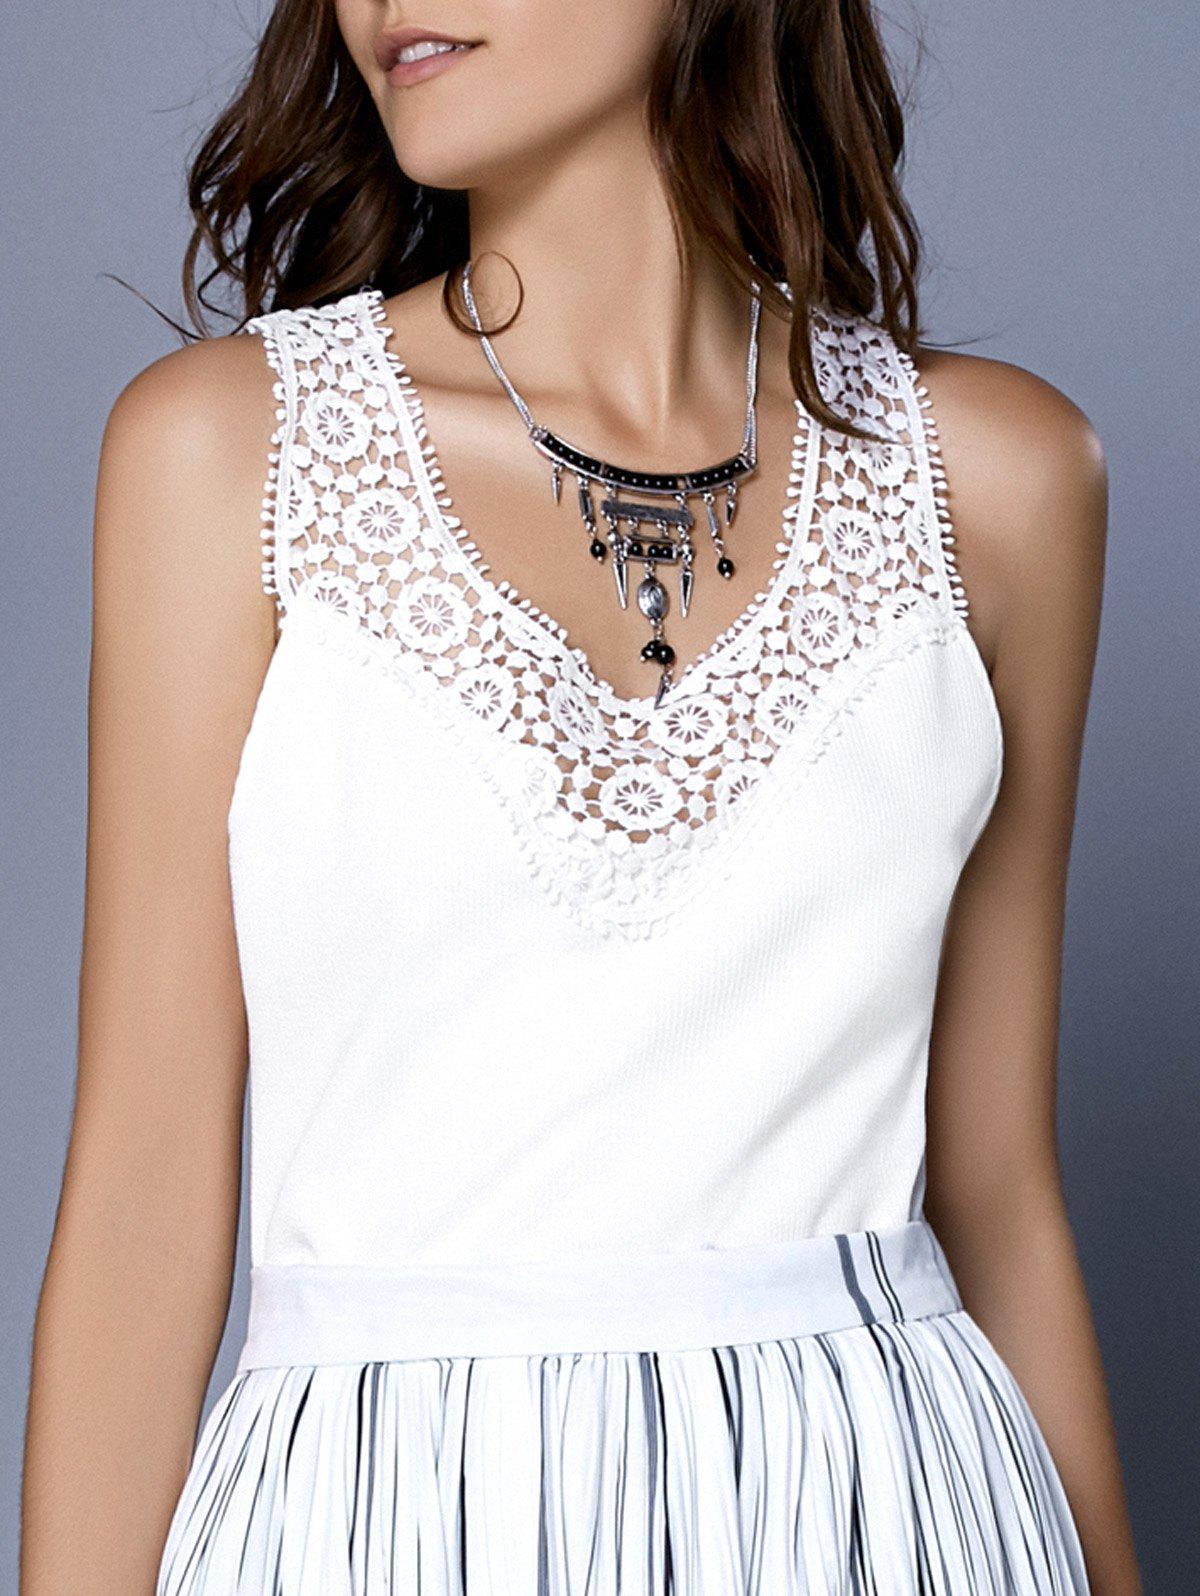 Fashionable Womens Scoop Neck Ribbed Lace Tank TopWomen<br><br><br>Size: S<br>Color: WHITE